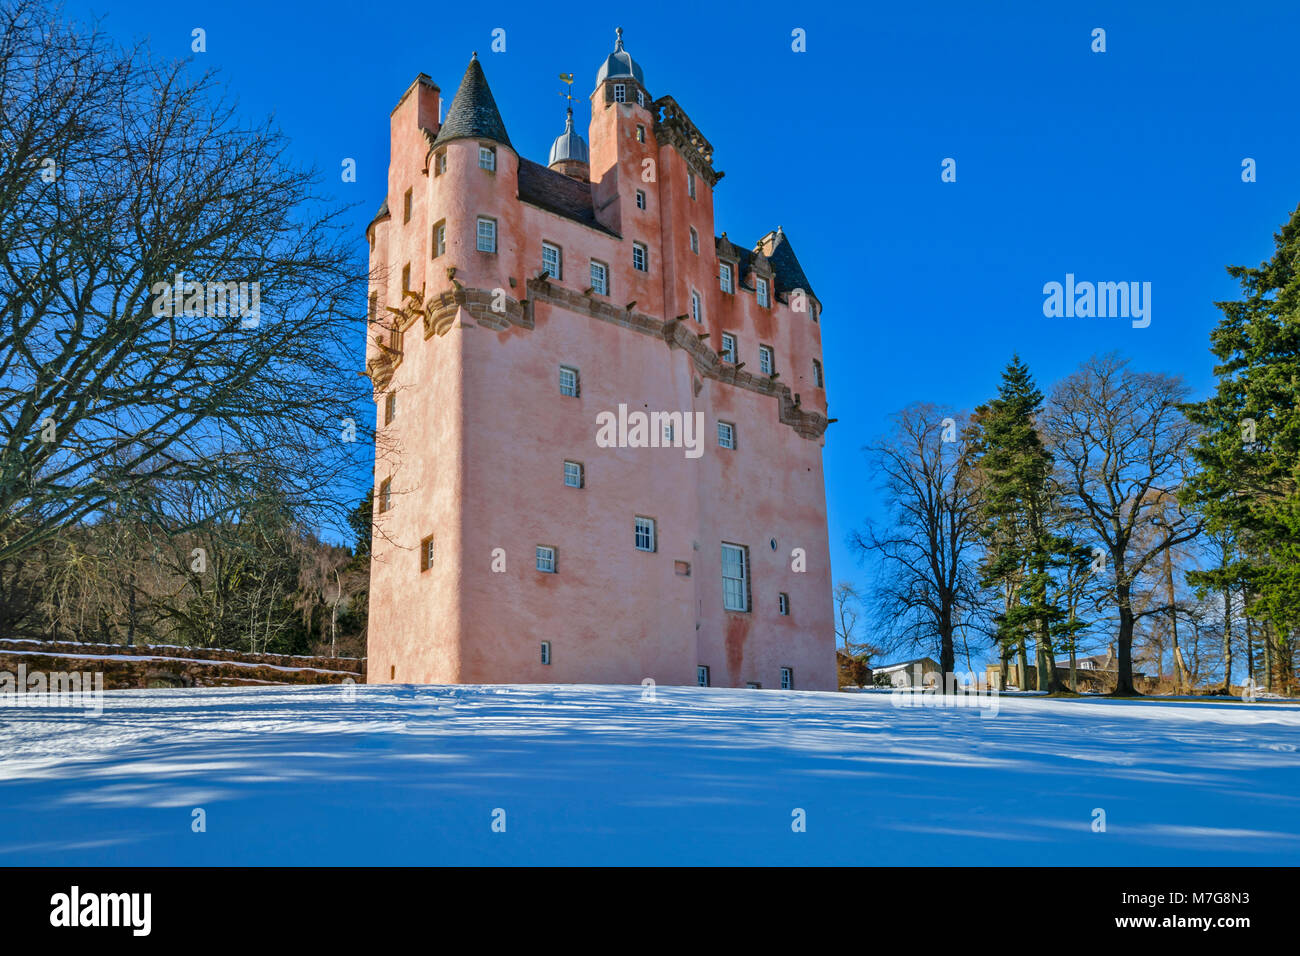 CRAIGIEVAR CASTLE ABERDEENSHIRE SCOTLAND A BLUE SKY THE IMPOSING PINK TOWER EVERGREEN FIR TREES AND DEEP WINTER - Stock Image